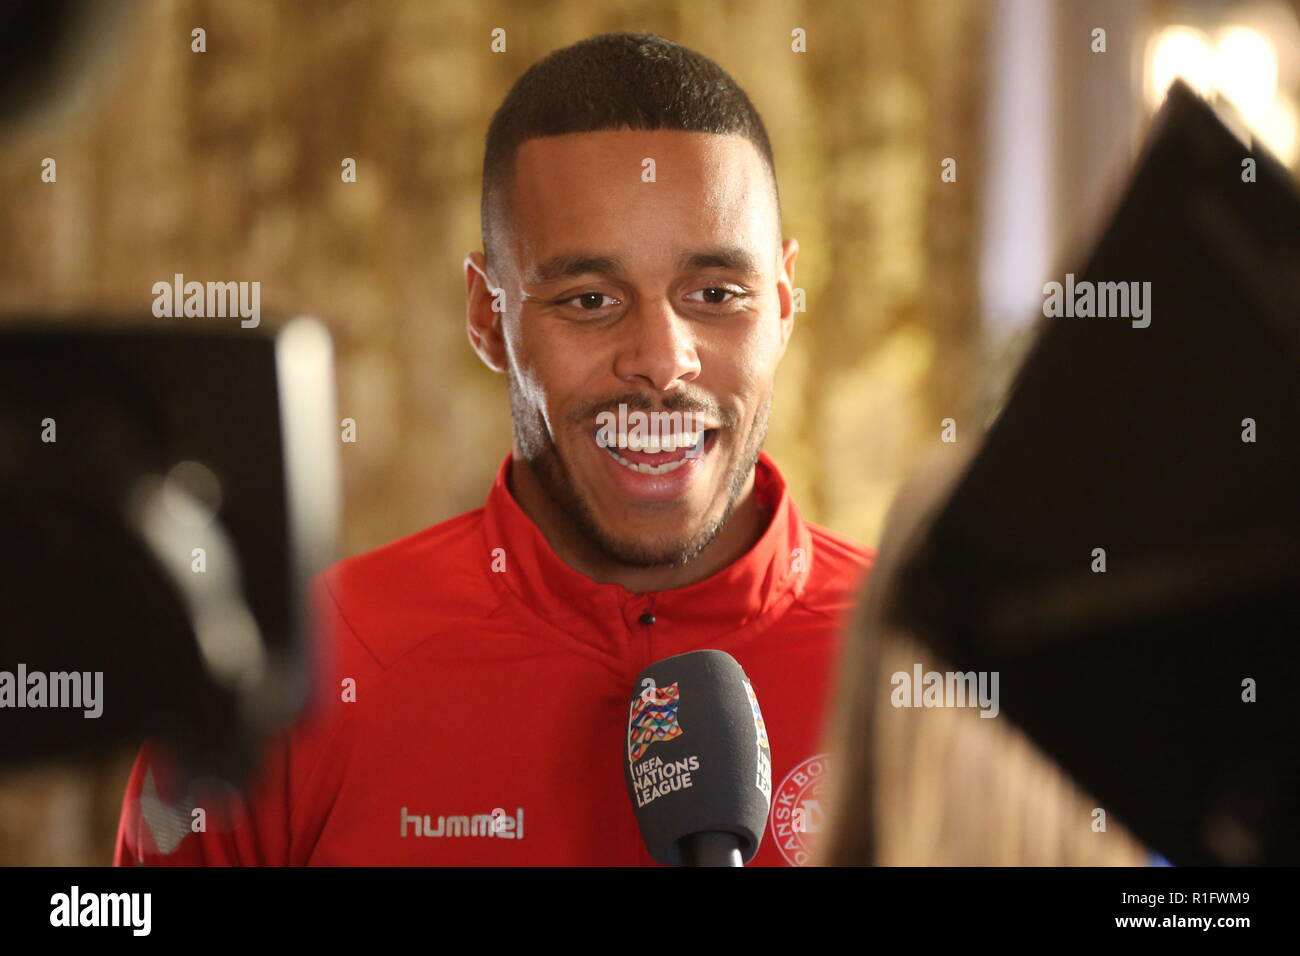 Newport, Wales, UK. 12th November, 2018. Mathias Jattah-Njie Jørgensen is a Danish professional footballer who plays as a centre back for the Premier League club Huddersfield Town and the Denmark national team. Pre-match interview at the Celtic Manor Resort near Newport ahead of Nations League match Wales v Denmark at the Cardiff City Stadium. Credit: www.garethjohn.uk/Alamy Live News - Stock Image